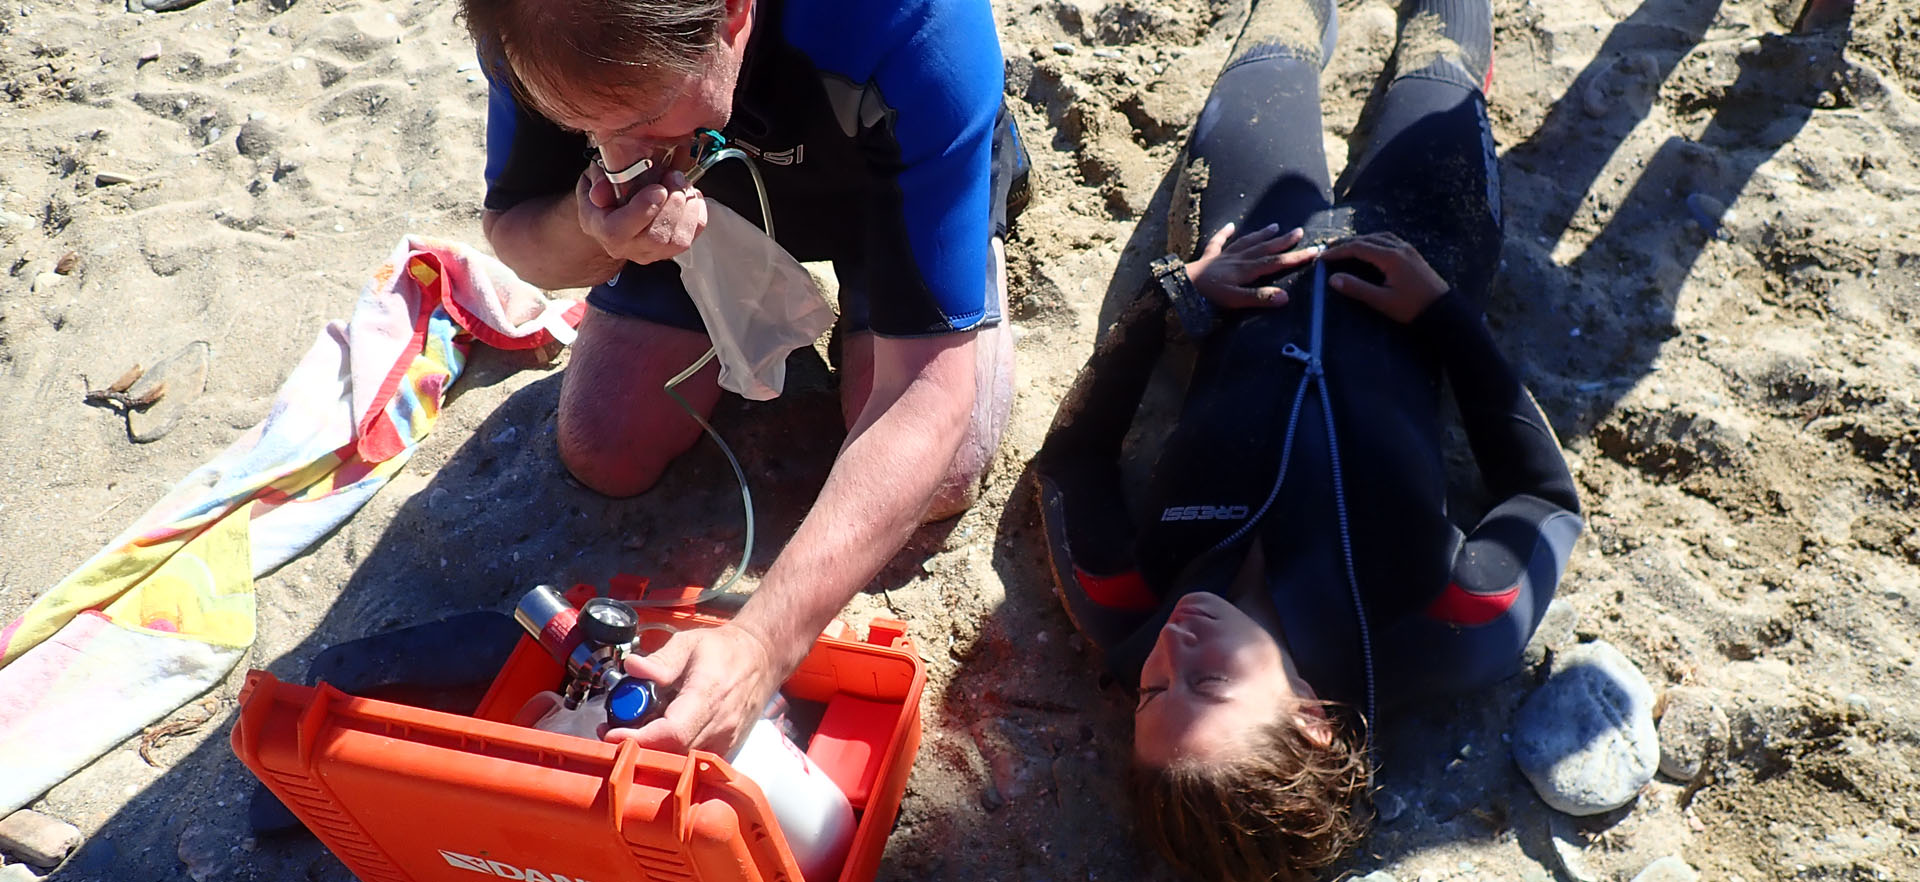 Divers practising first aid on a beach